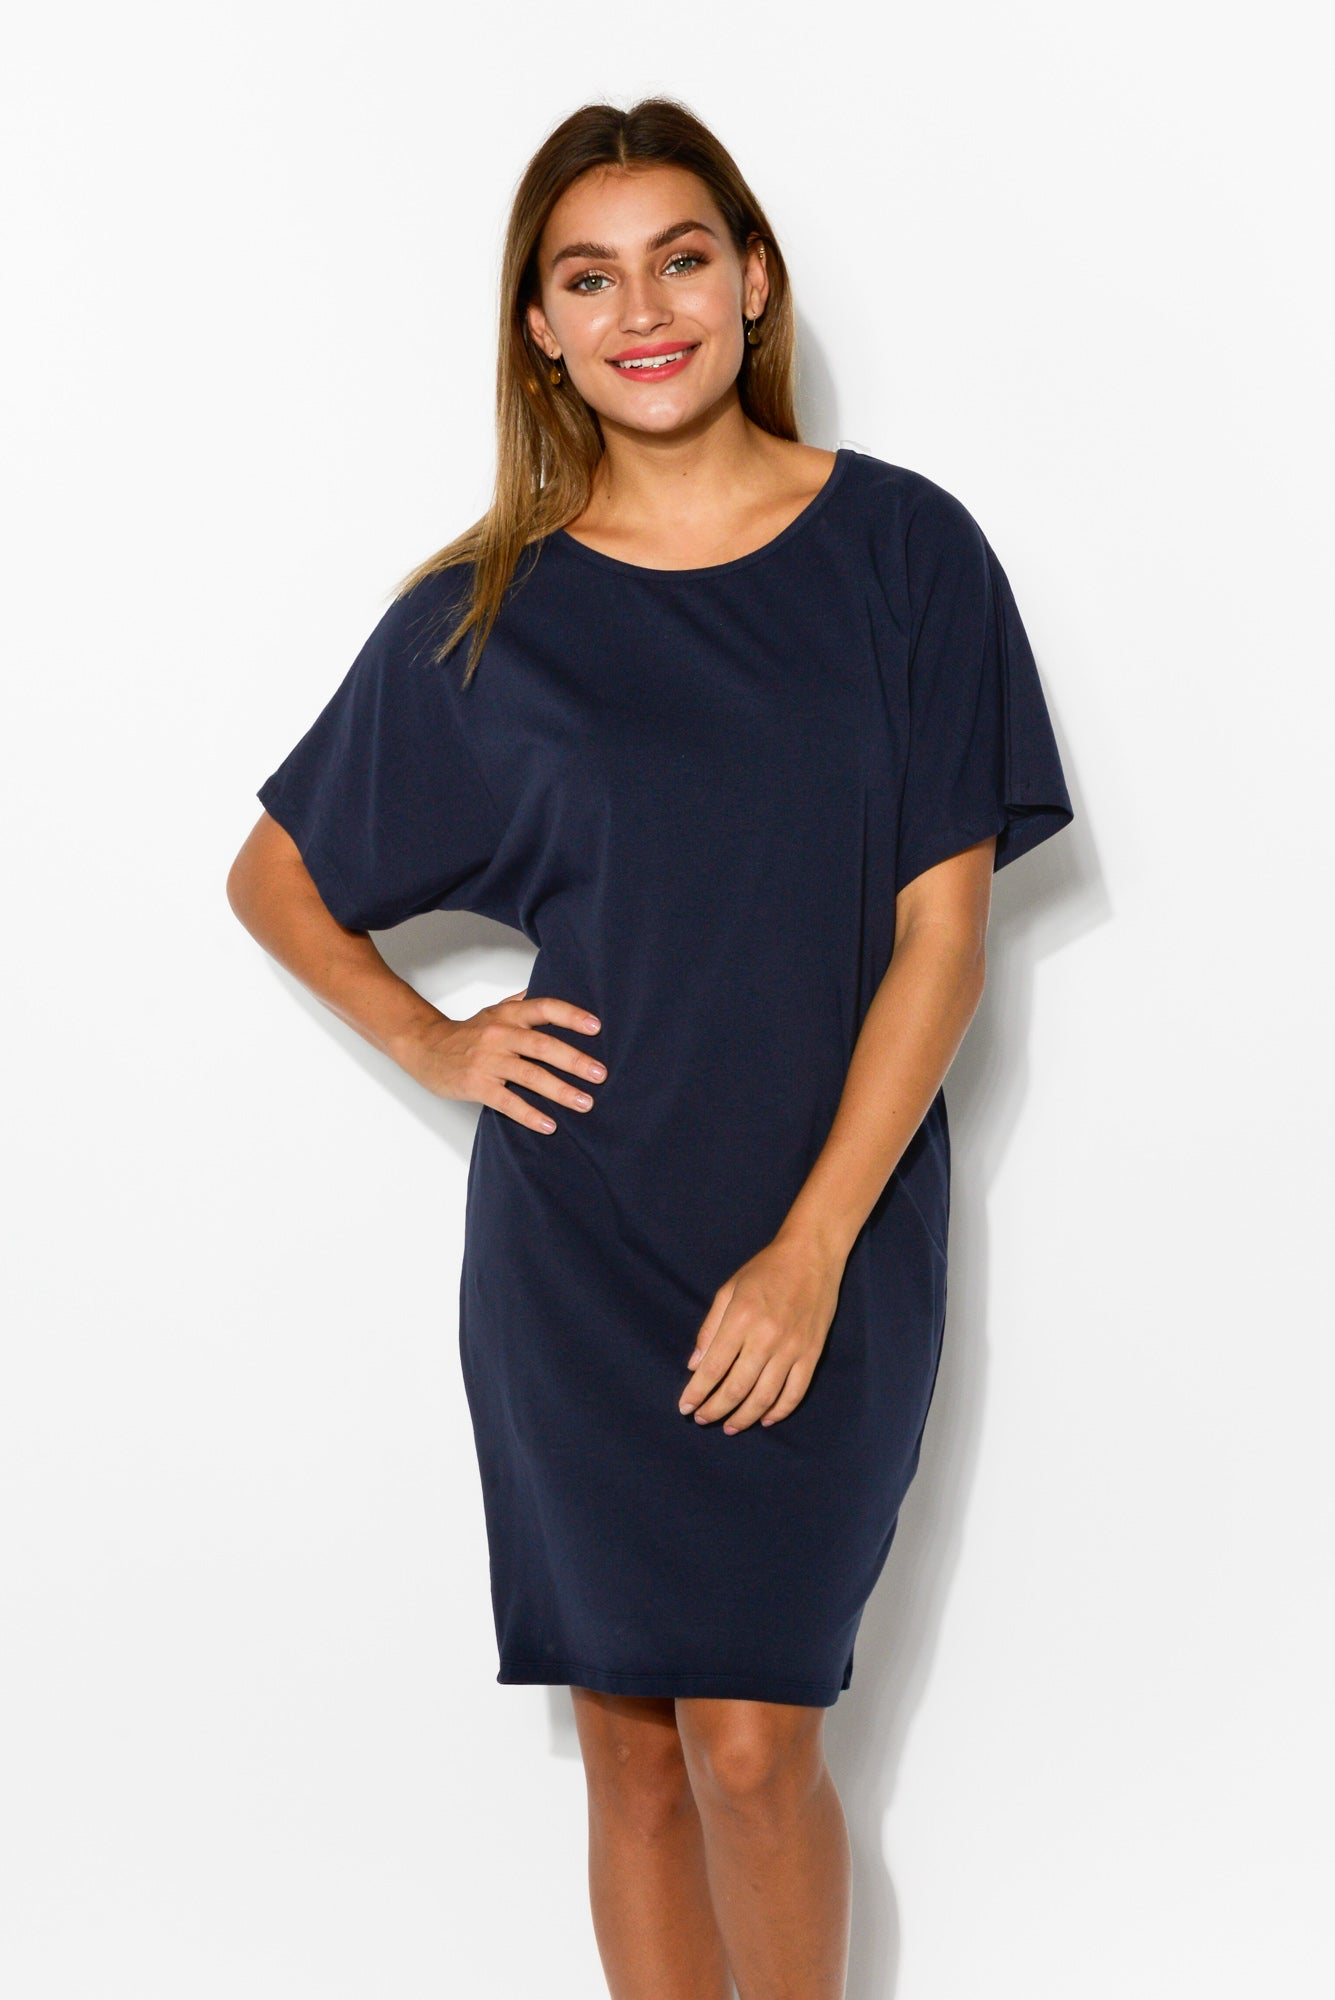 Dorothy Navy Drape Tee Dress - Blue Bungalow